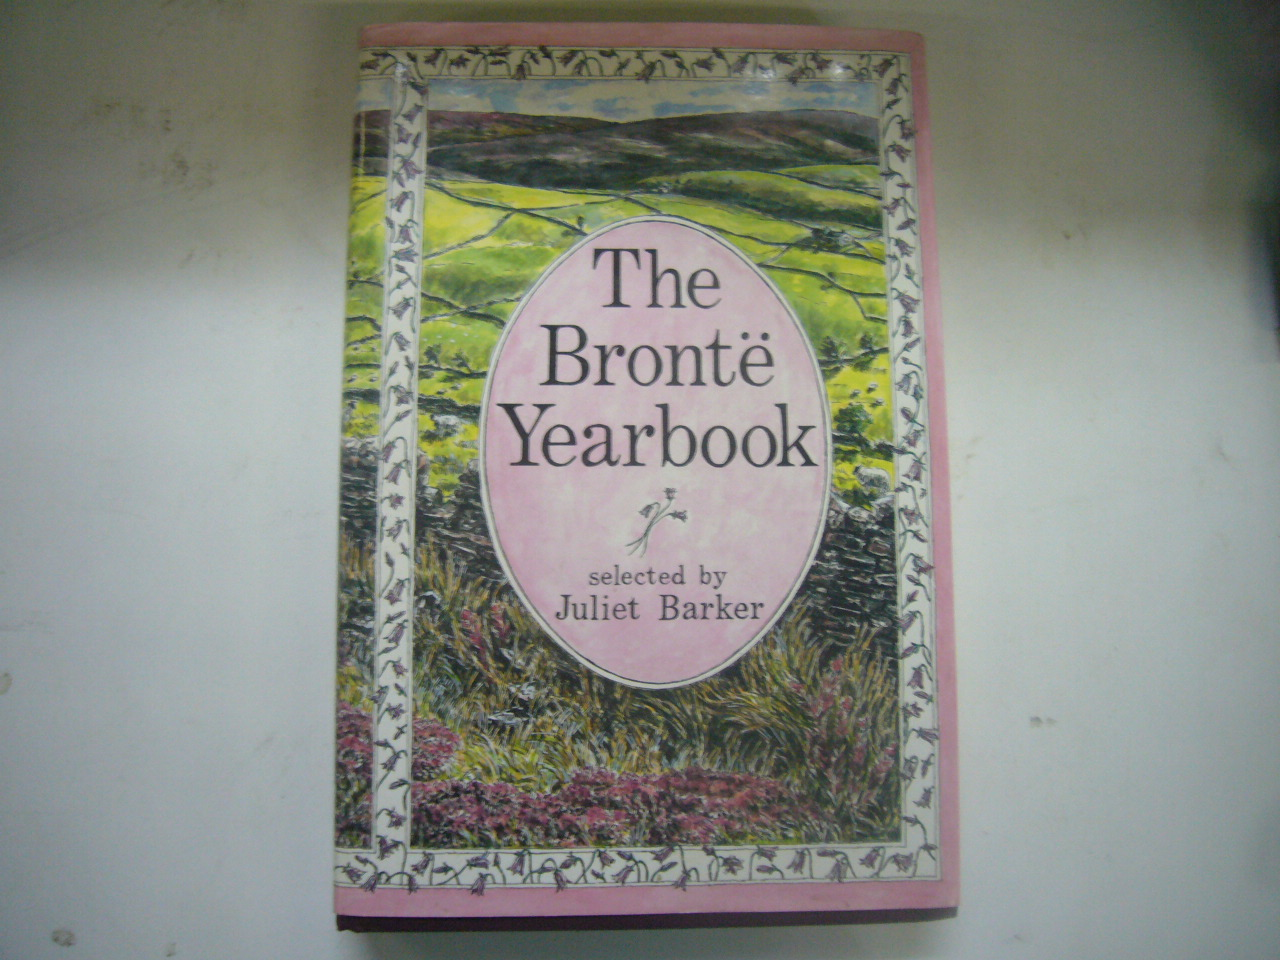 The Bronte Yearbook